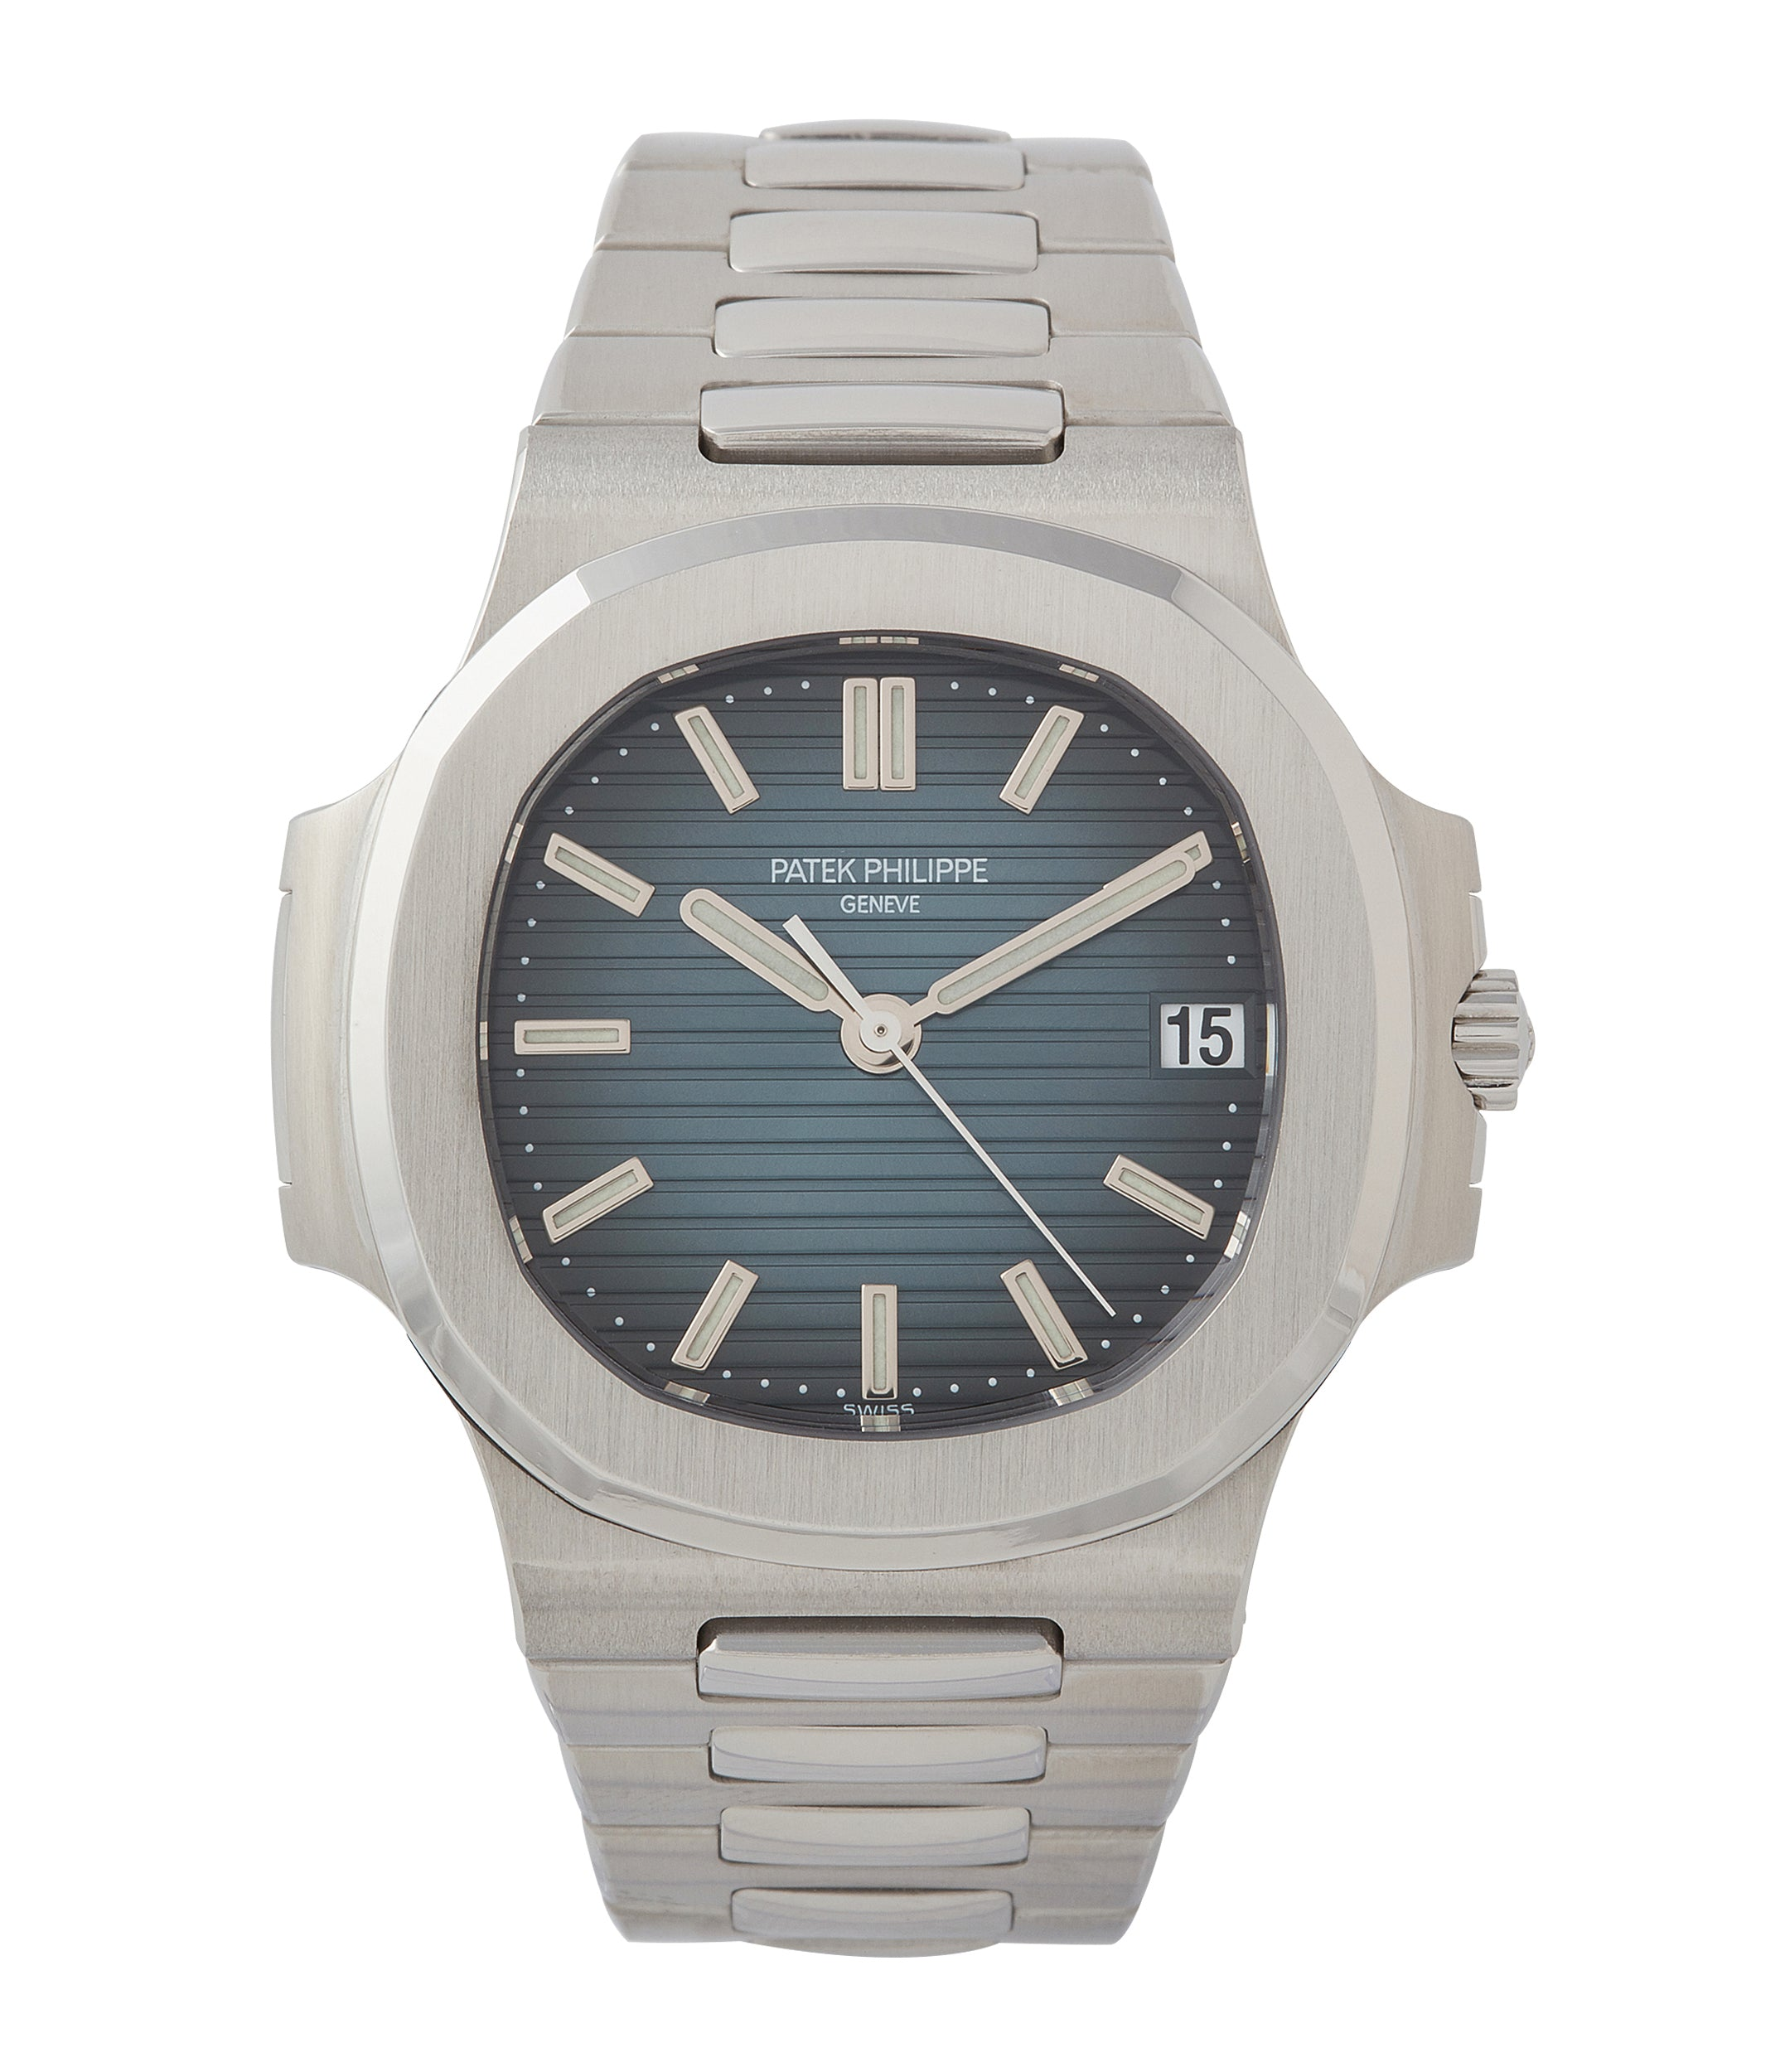 sell Patek Philippe Nautilus watch online to A Collected Man, online specialist of rare pre-owned watches